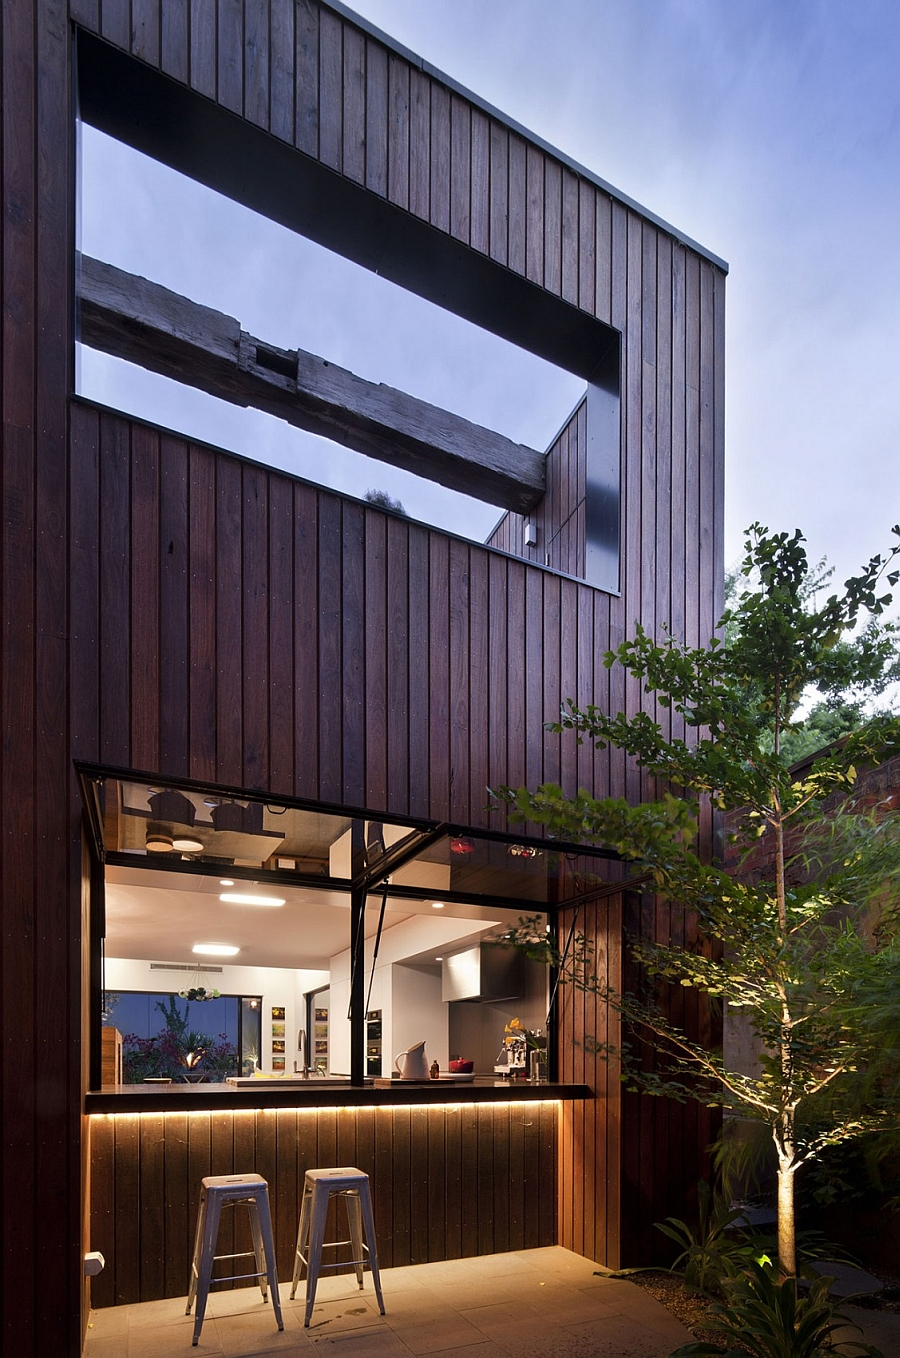 Exteriors clad in wood